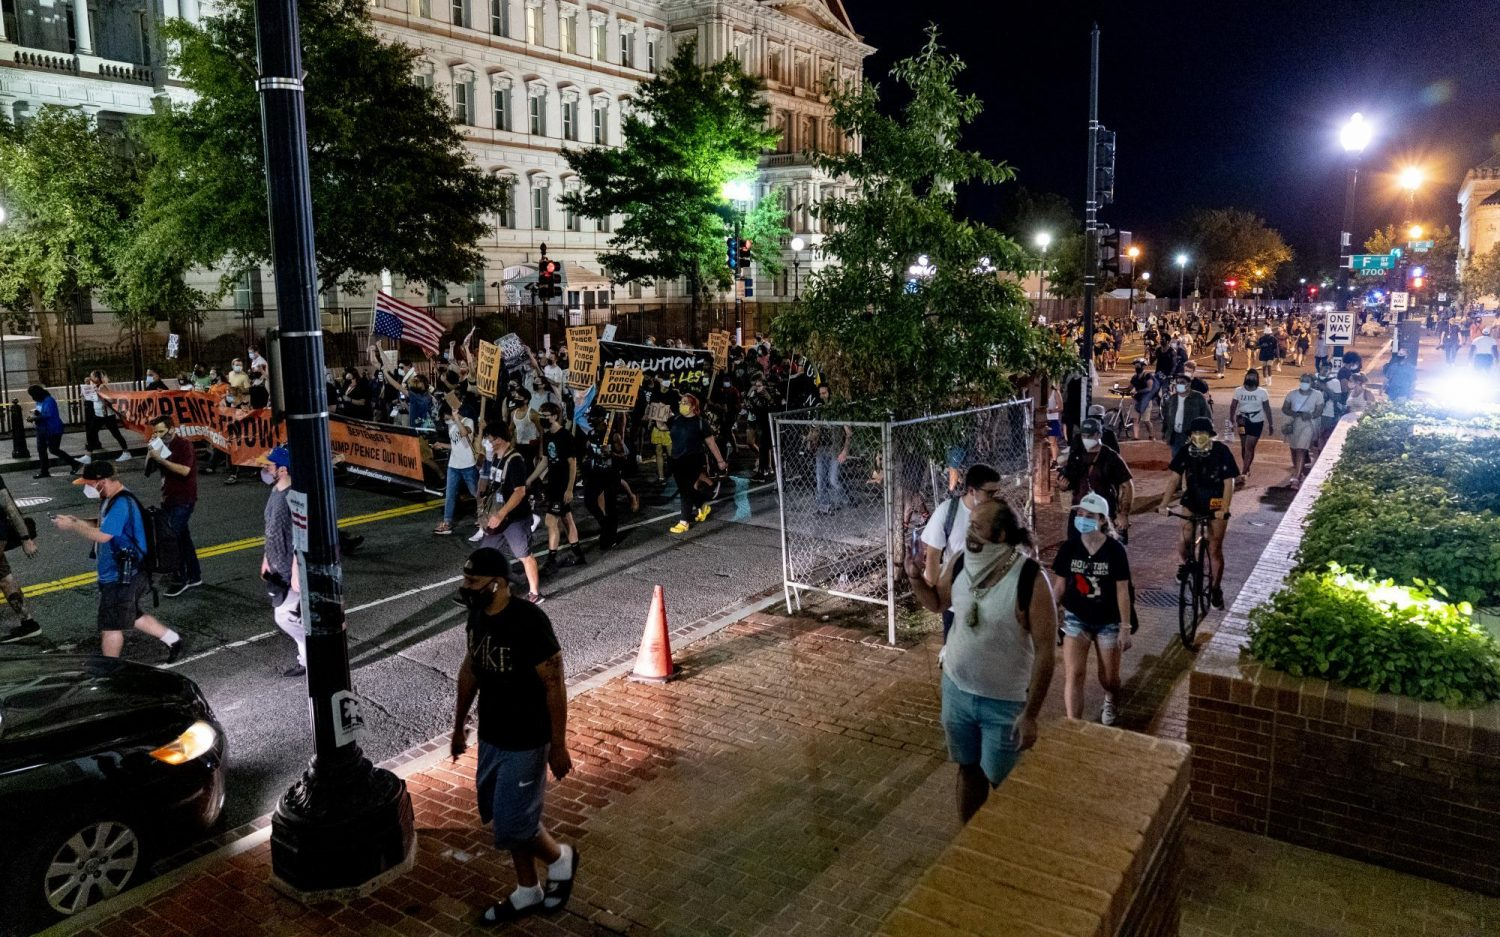 Protester disputes Metaxas account of RNC altercation